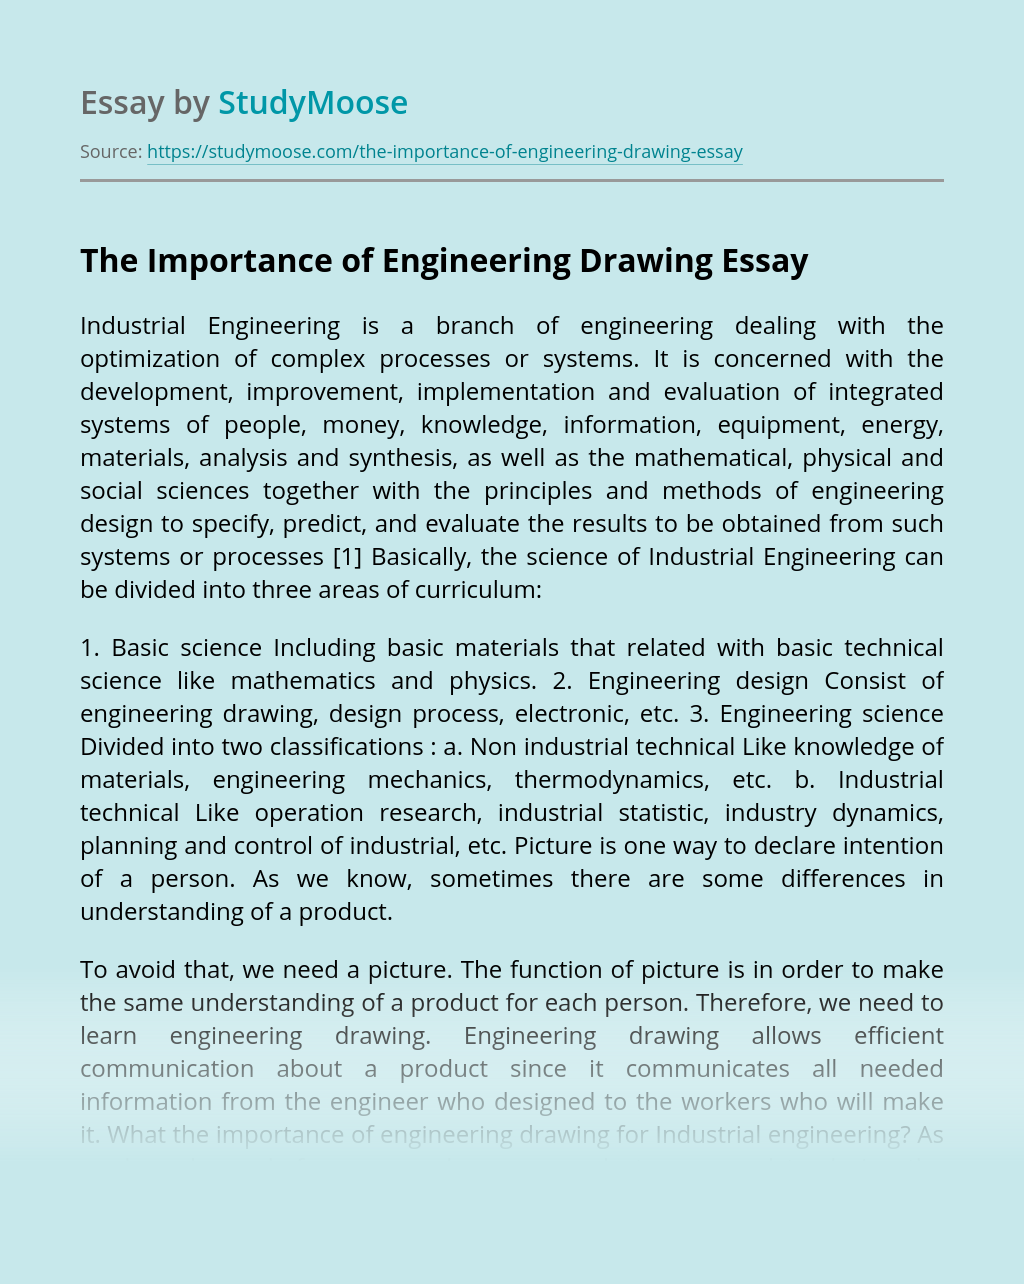 The Importance of Engineering Drawing